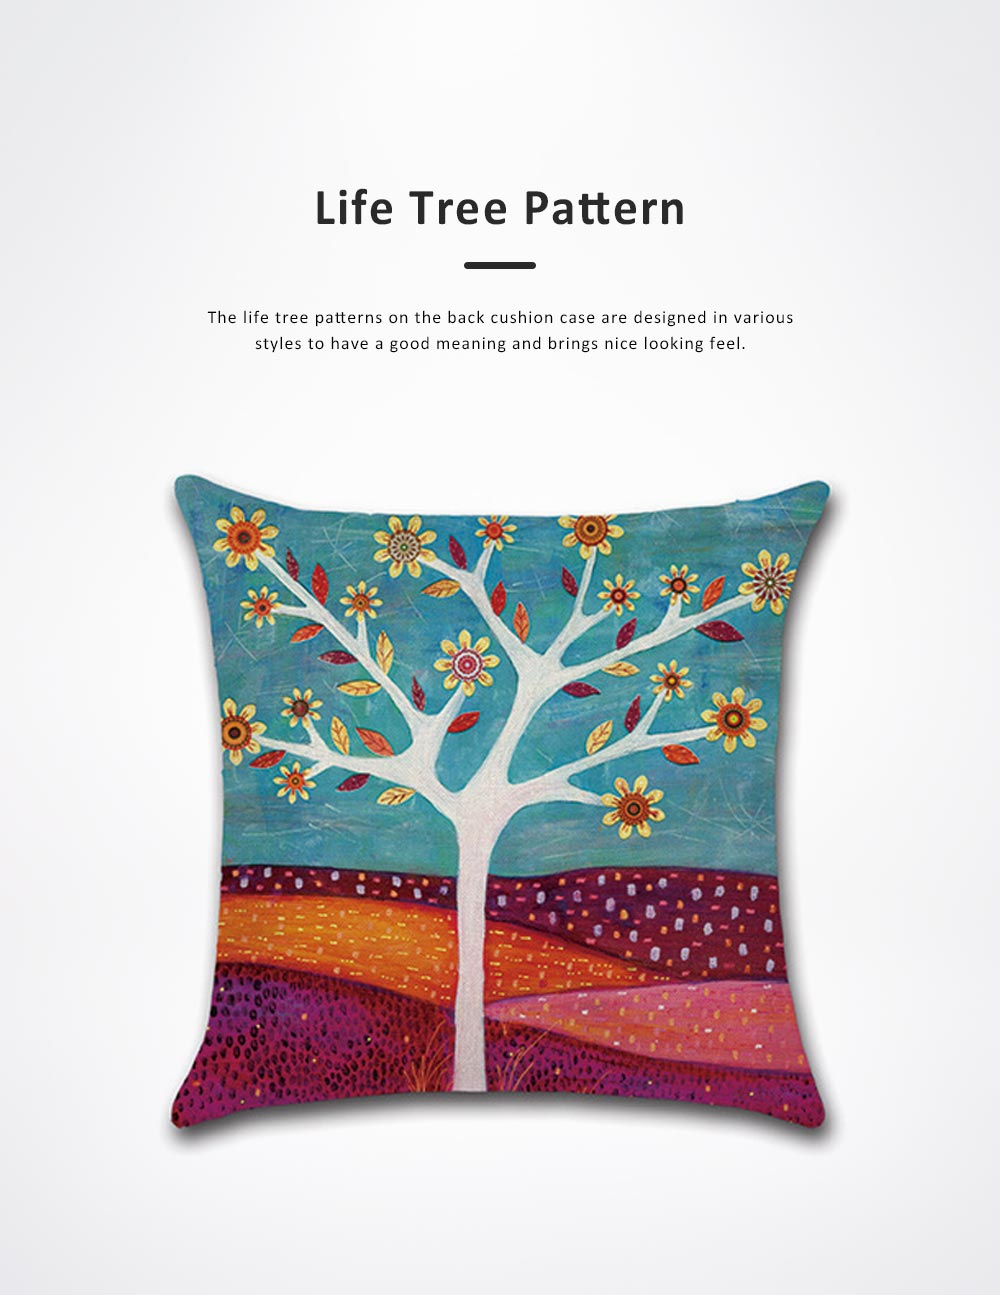 Abstract Tree Pattern Cushion Cover with Digital Printing, Skin-friendly Back Cushion Case for Vehicles, Sofa, Office Pillow Case 4